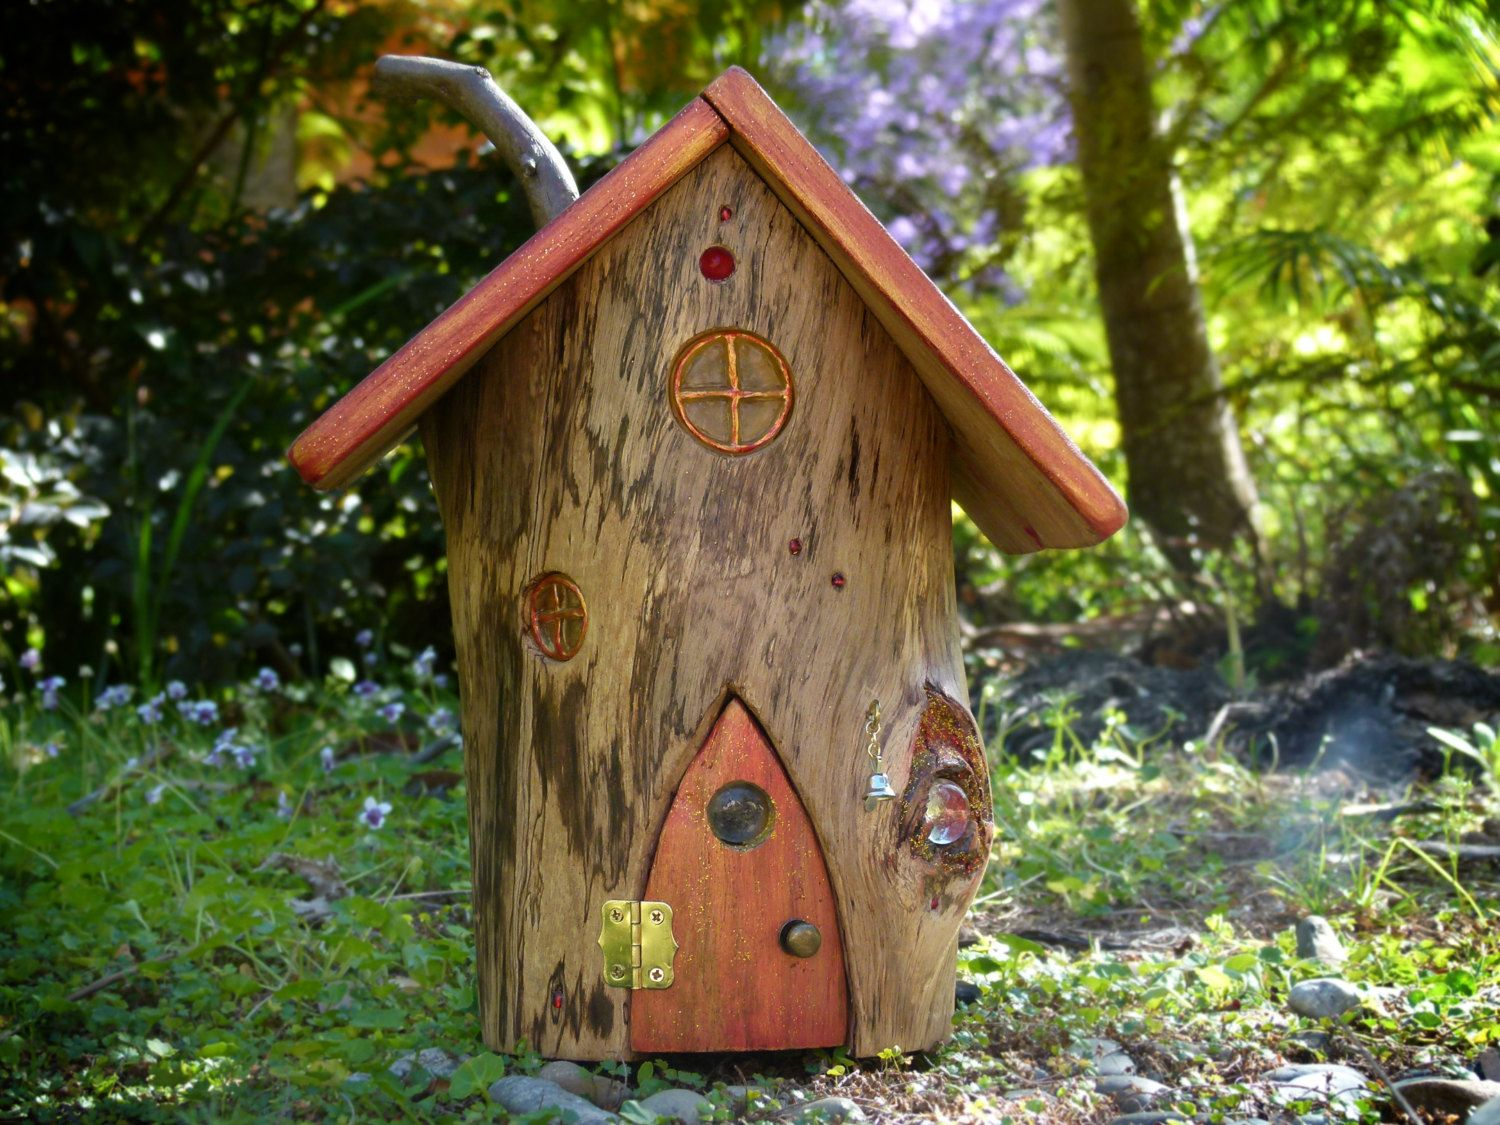 Tree stump fairy house - Ooak Wooden Fairy House With Red Opening Door And Resin Windows Tree Stump Fairy House Large Fairy House